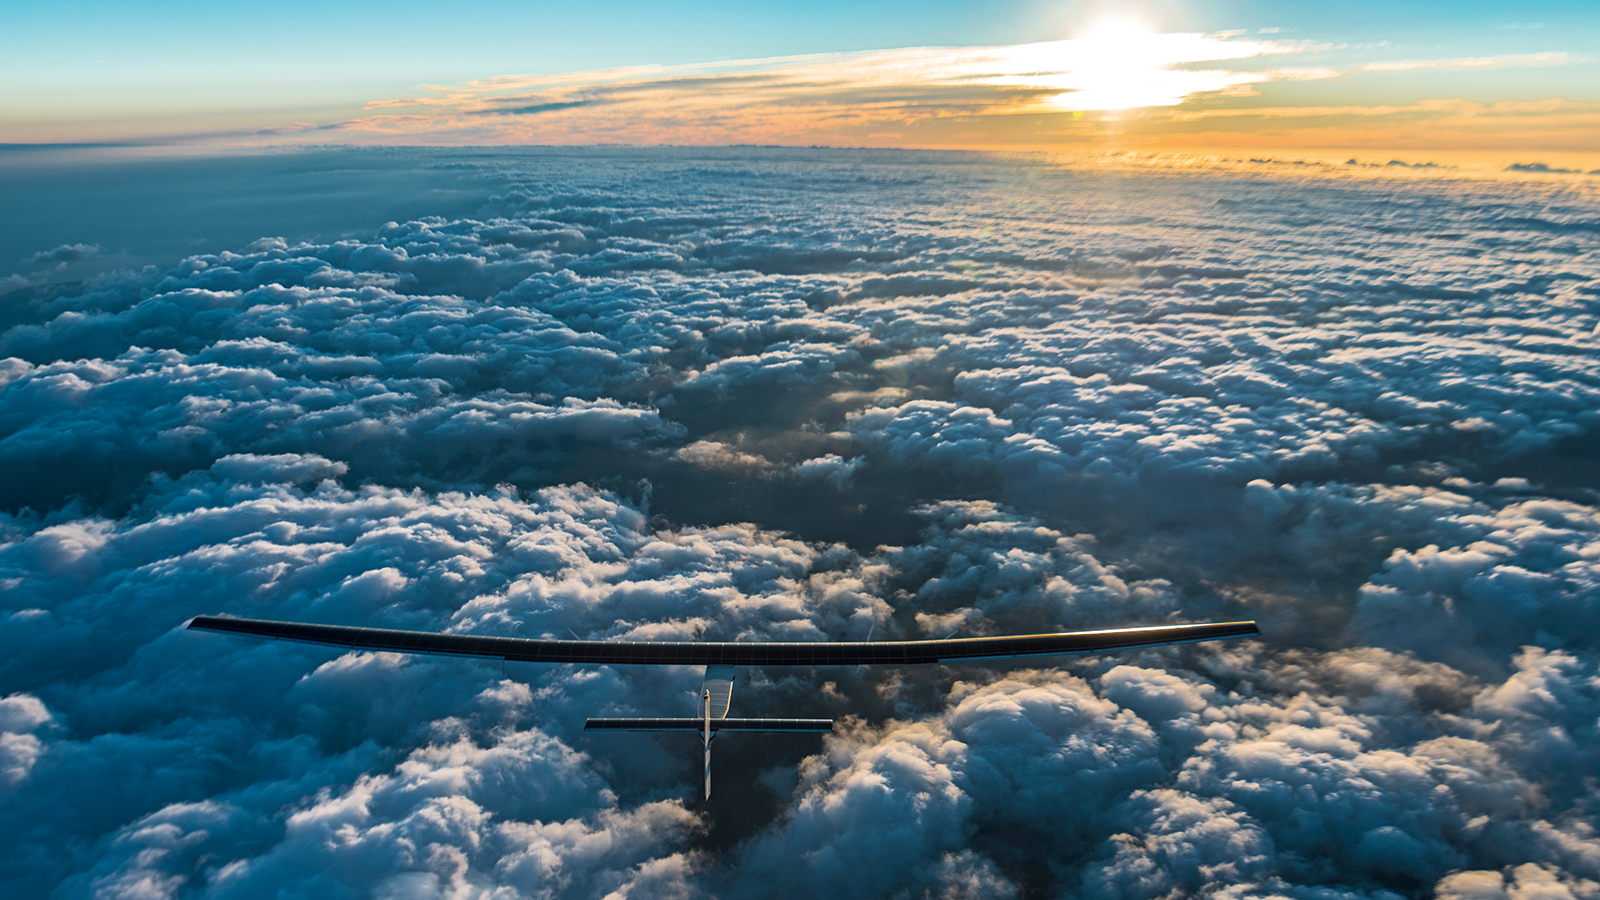 Solar Impulse © Anna Pizzolante